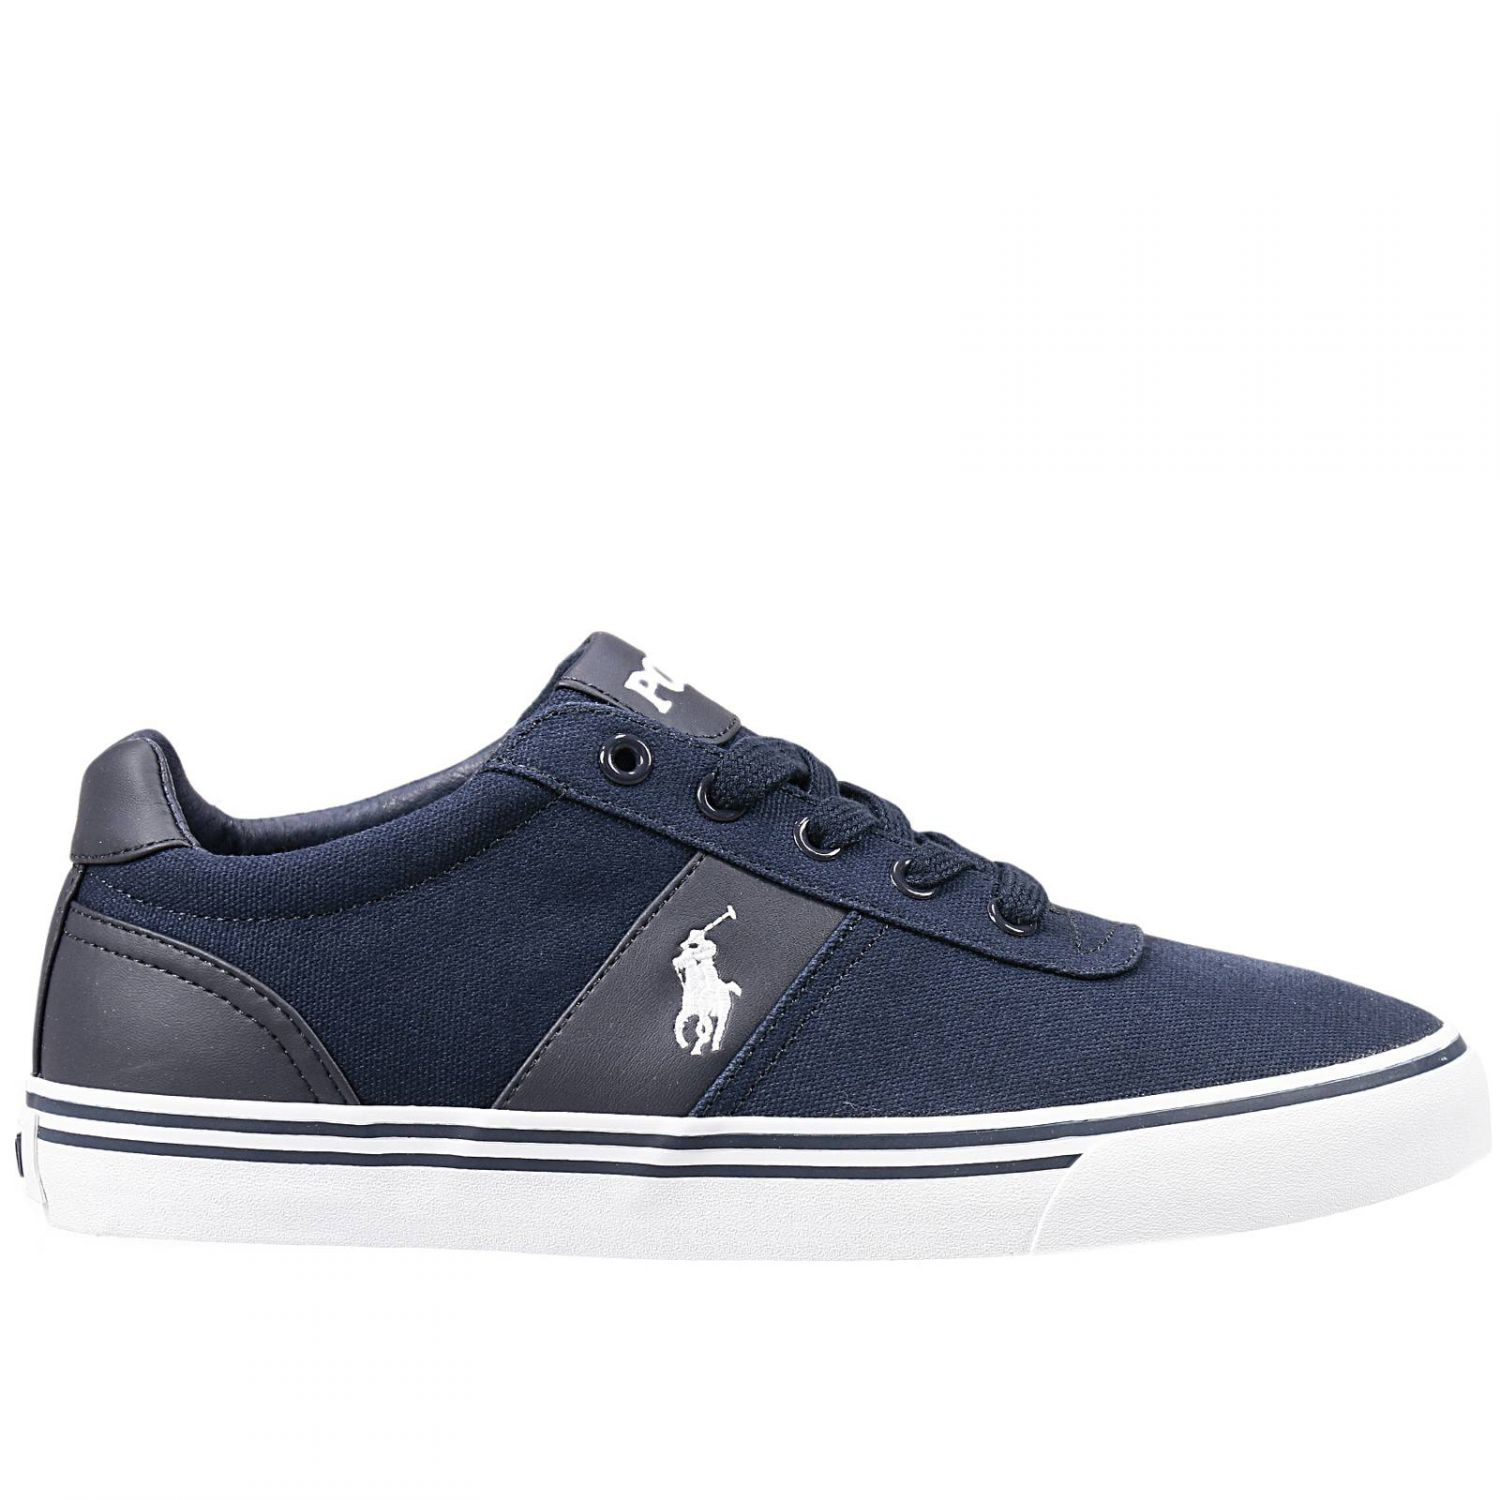 polo ralph lauren sneakers in blue for men lyst. Black Bedroom Furniture Sets. Home Design Ideas